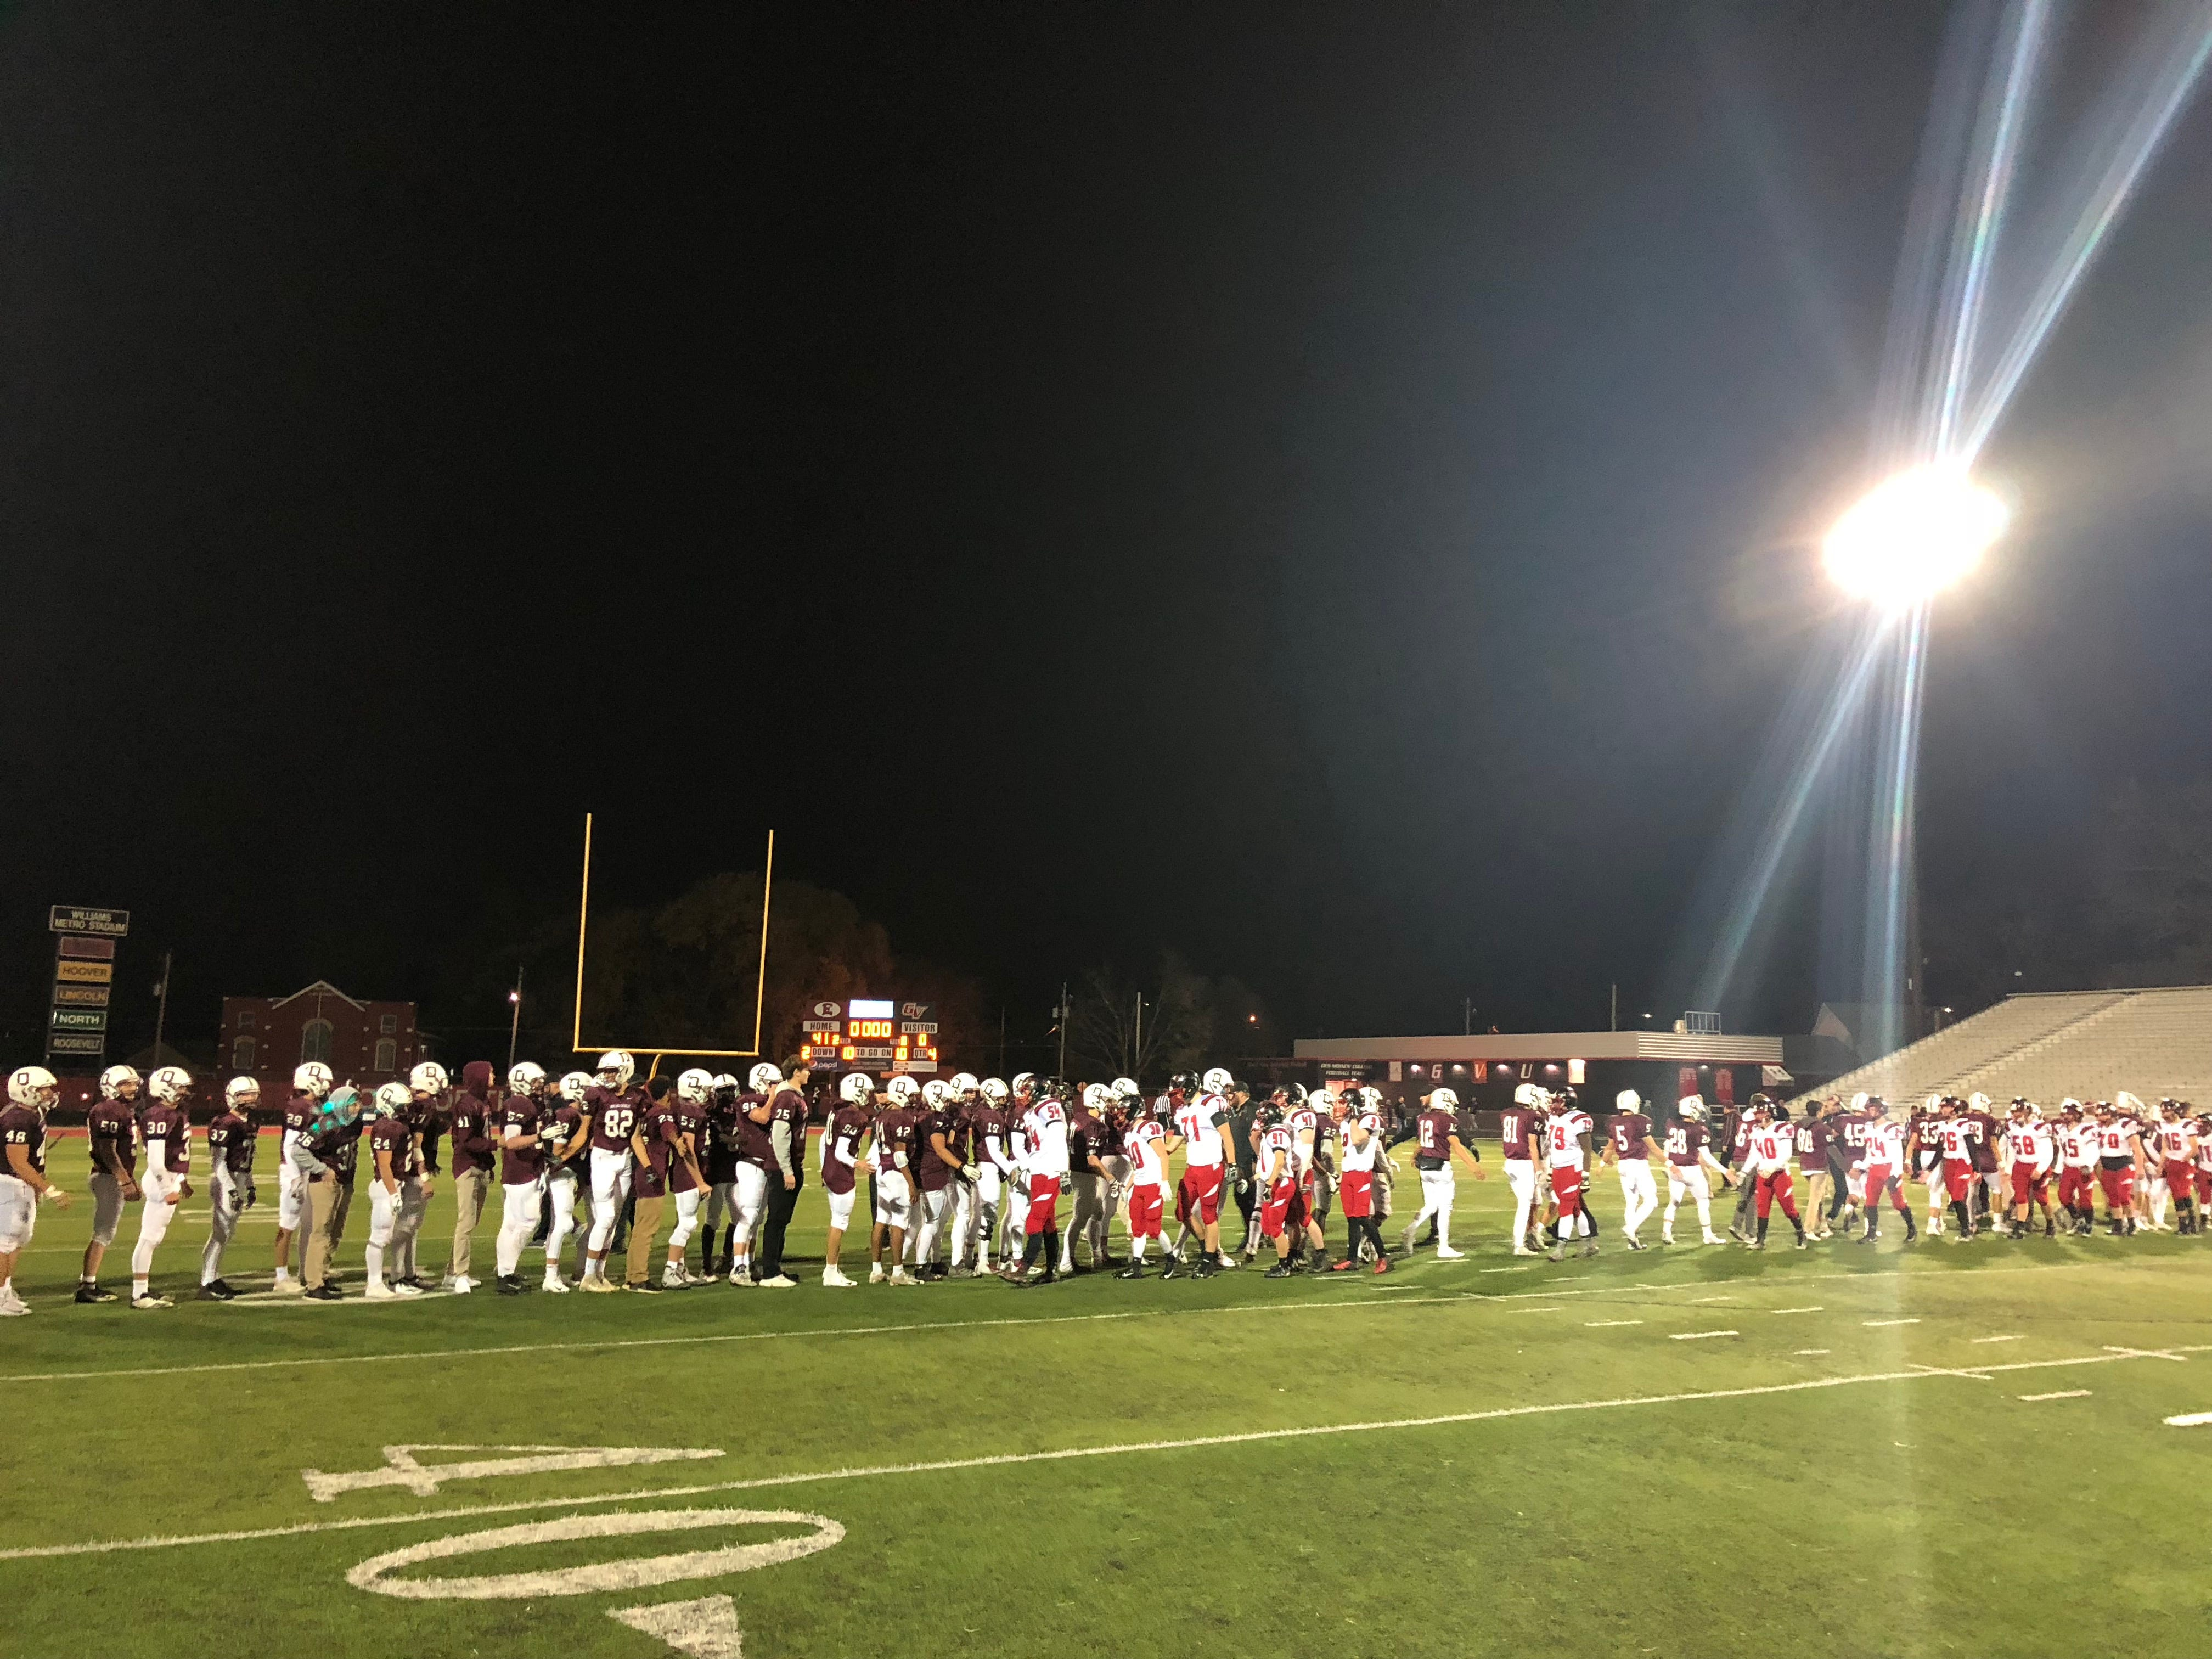 The Dowling Catholic football team beat Fort Dodge, 41-0, in the first round of the Class 4A state playoffs on Friday at Williams Stadium in Des Moines.